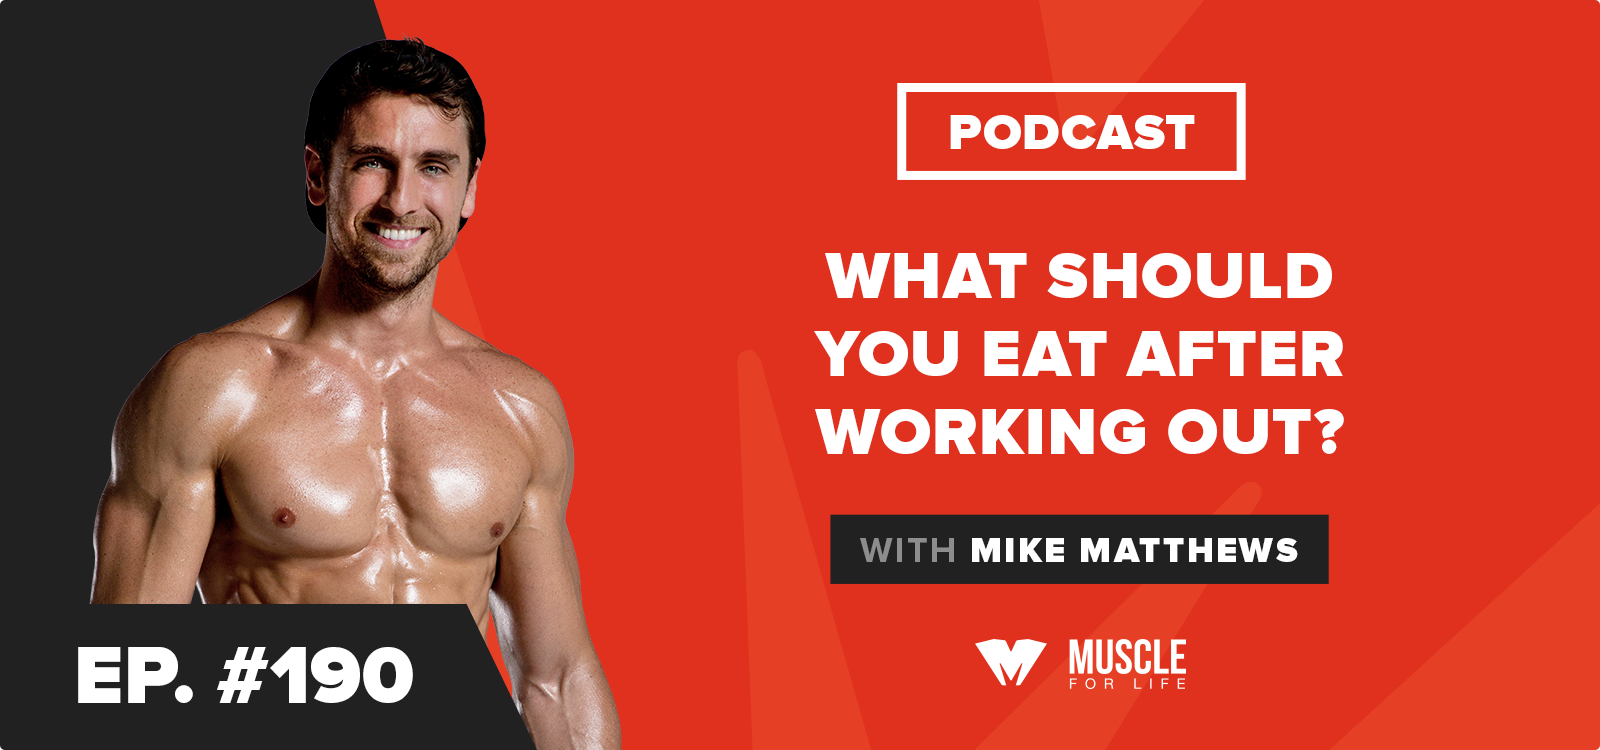 What Should You Eat After Working Out?